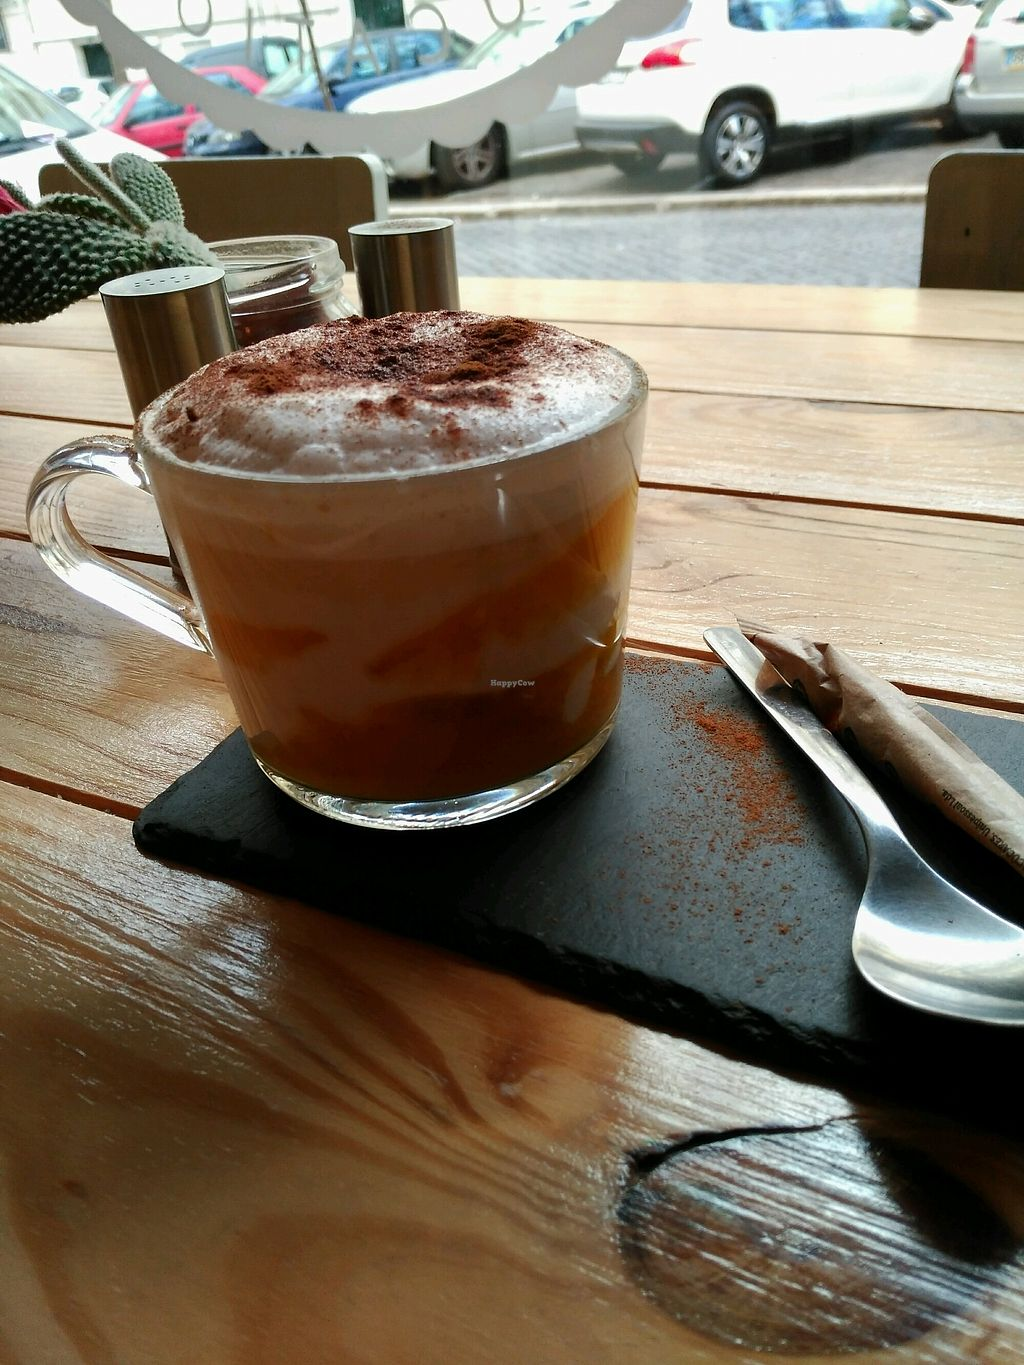 """Photo of Foodprintz Cafe  by <a href=""""/members/profile/Cl%C3%A1udiaA"""">CláudiaA</a> <br/>Pumpkin Chai Latte  <br/> February 7, 2018  - <a href='/contact/abuse/image/81313/356081'>Report</a>"""